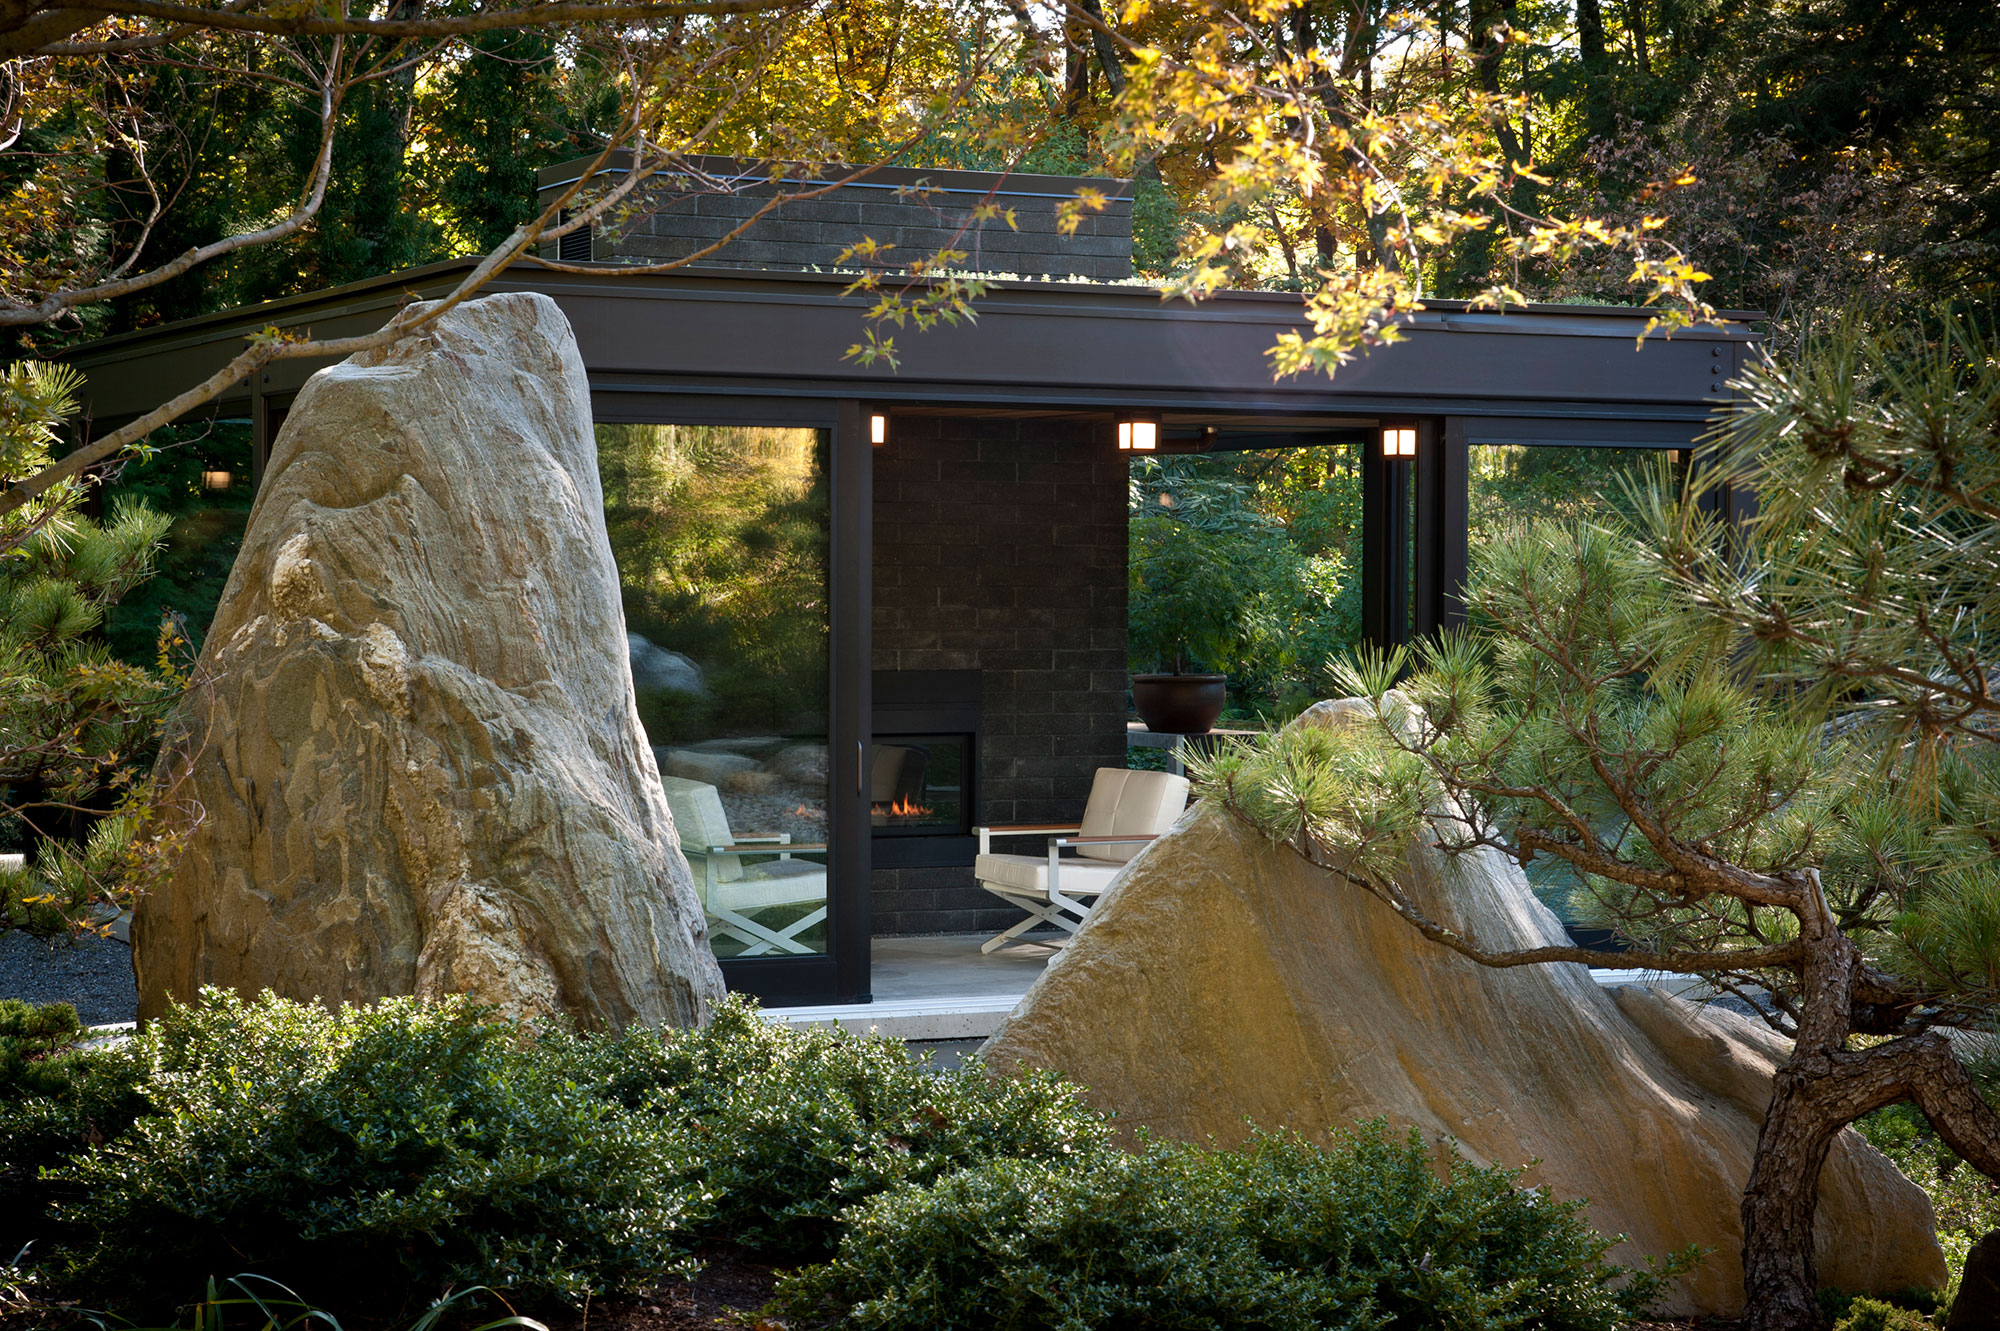 large boulder ledge in foreground with glass and steel greenhouse in background